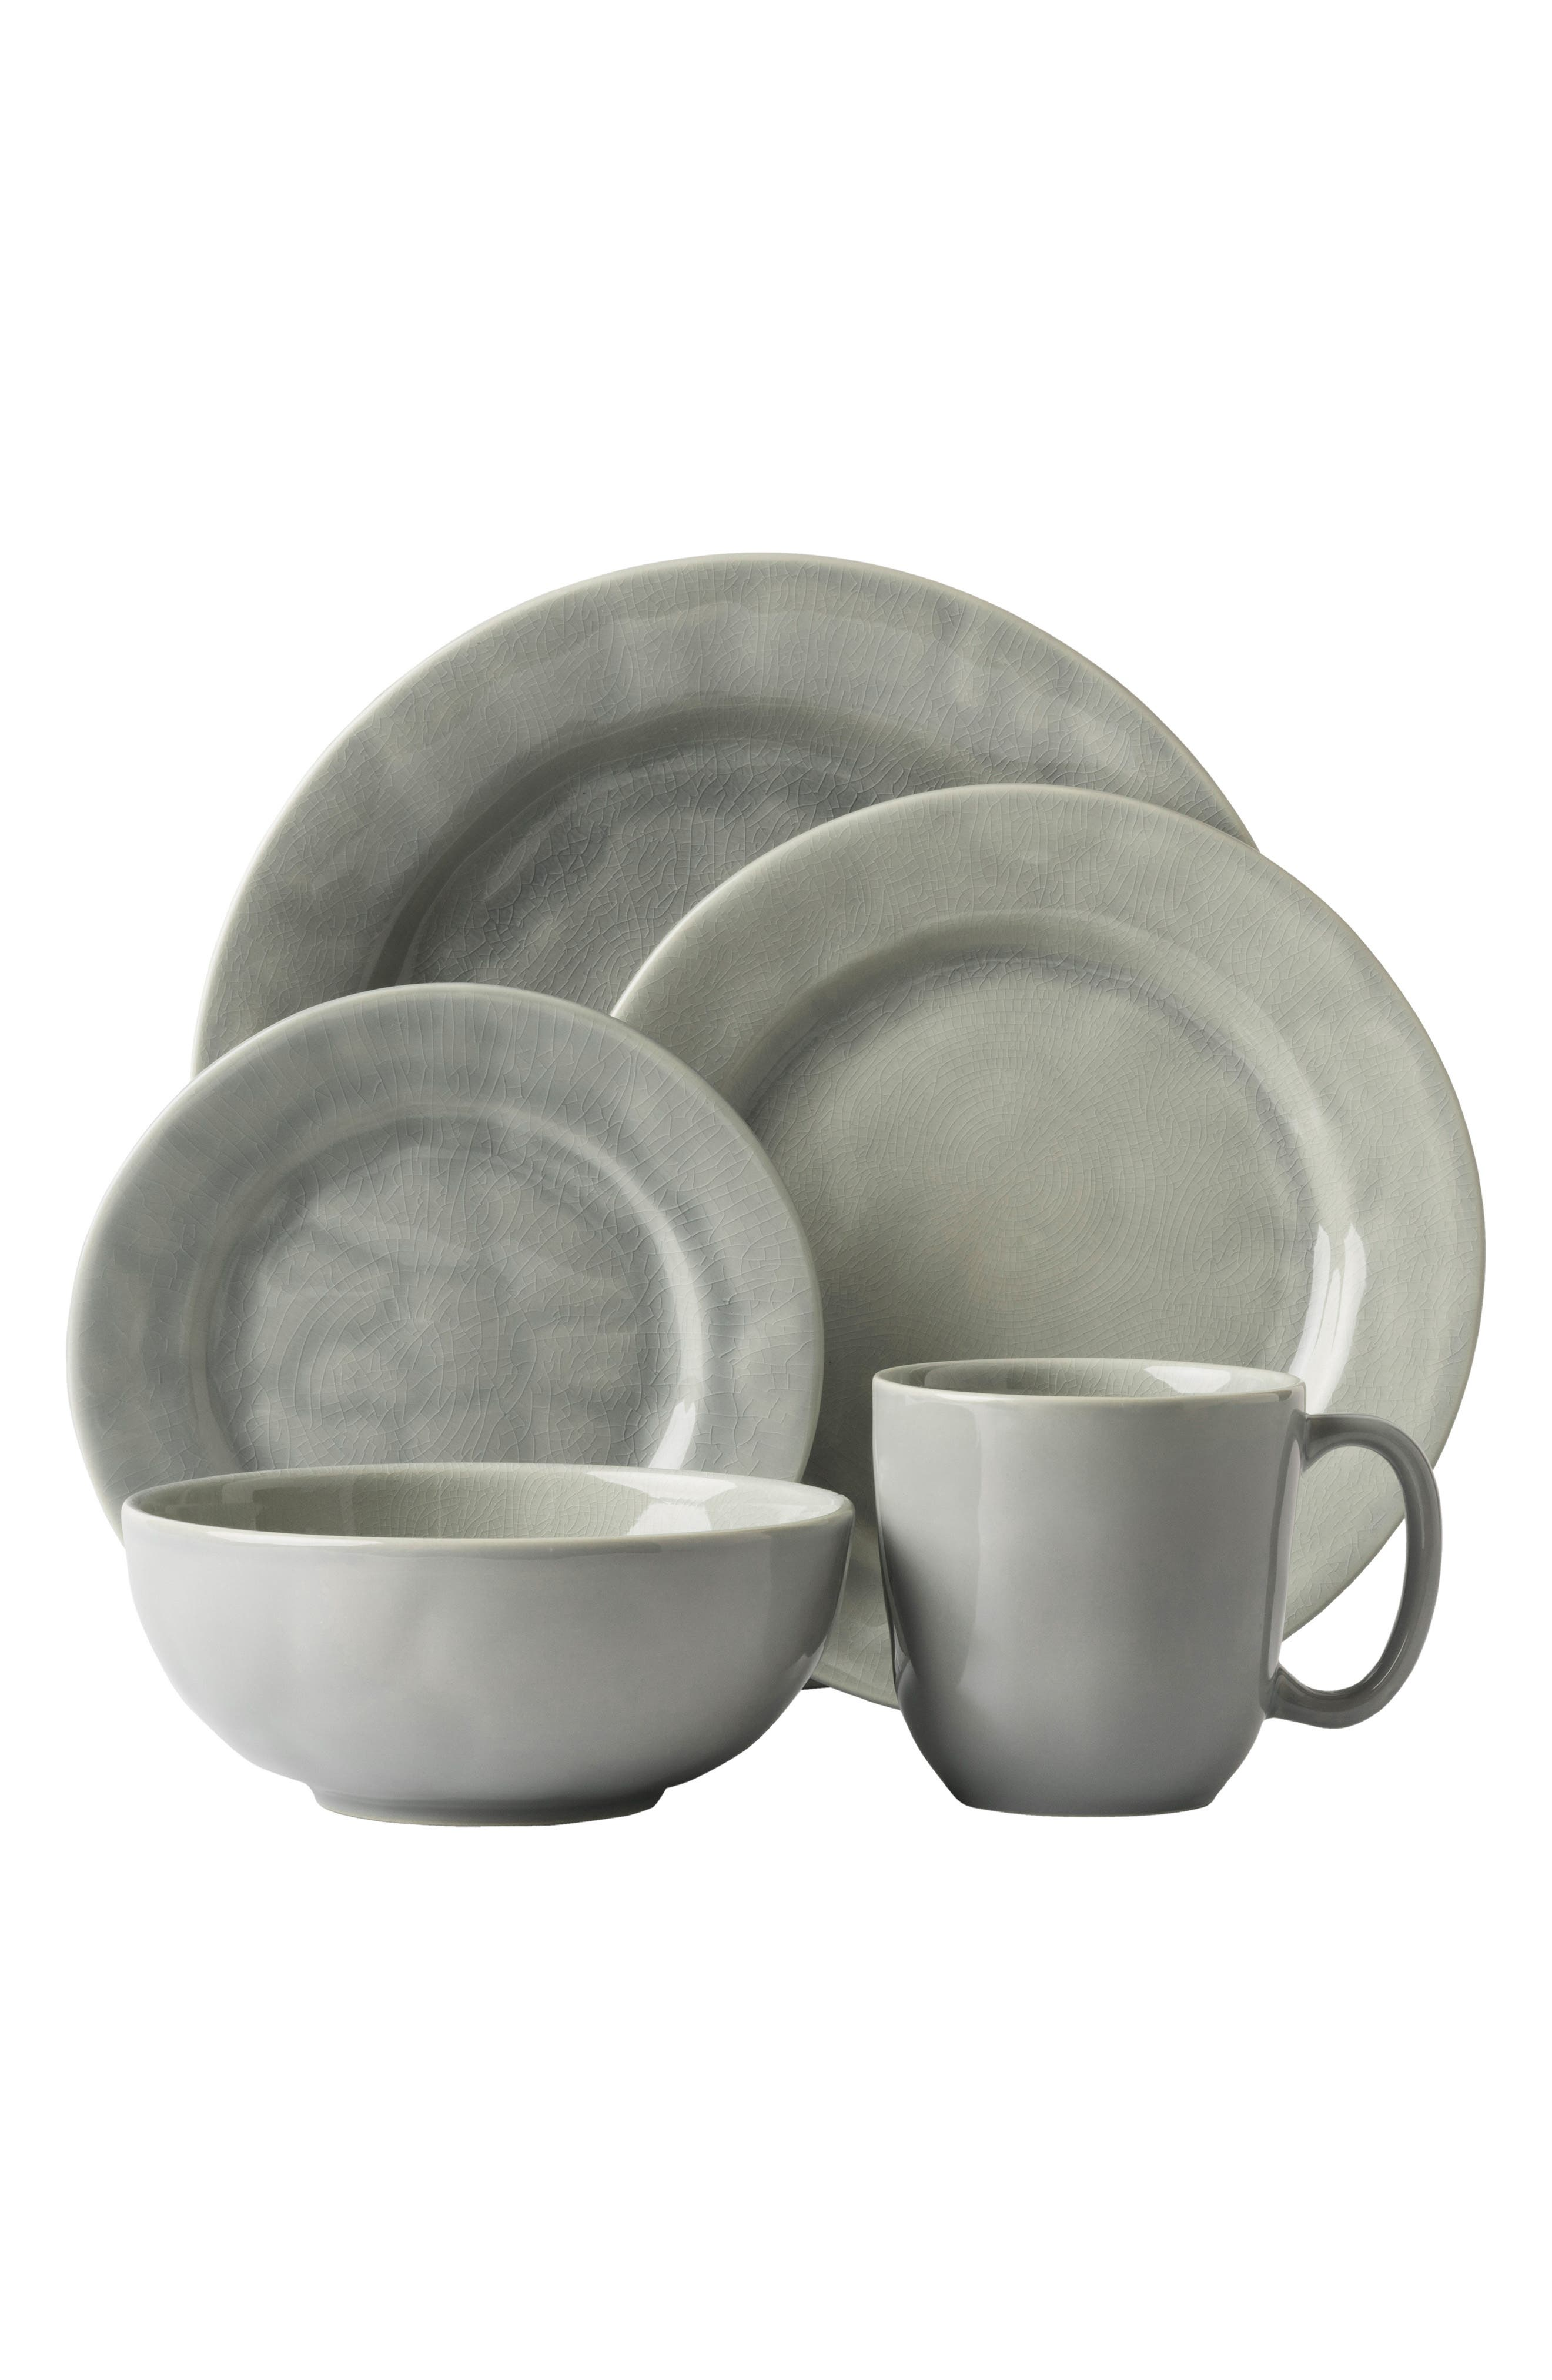 Alternate Image 1 Selected - Juliska 'Puro - Grey Crackle' 5-Piece Place Setting